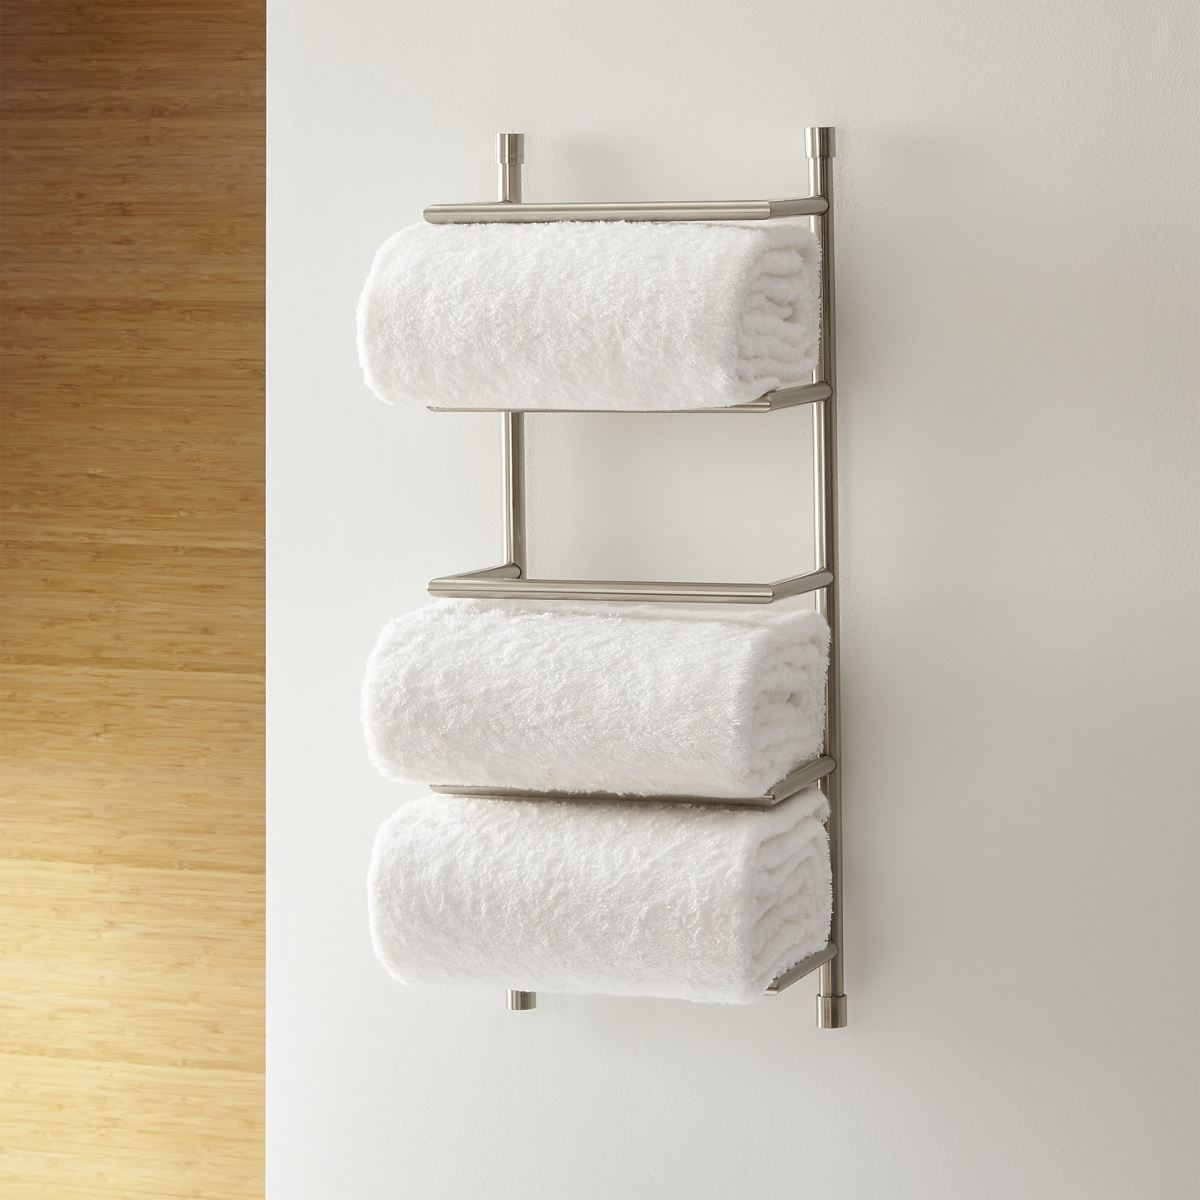 Bathroom Towel Holder 20 Tips For An Organized Bathroom